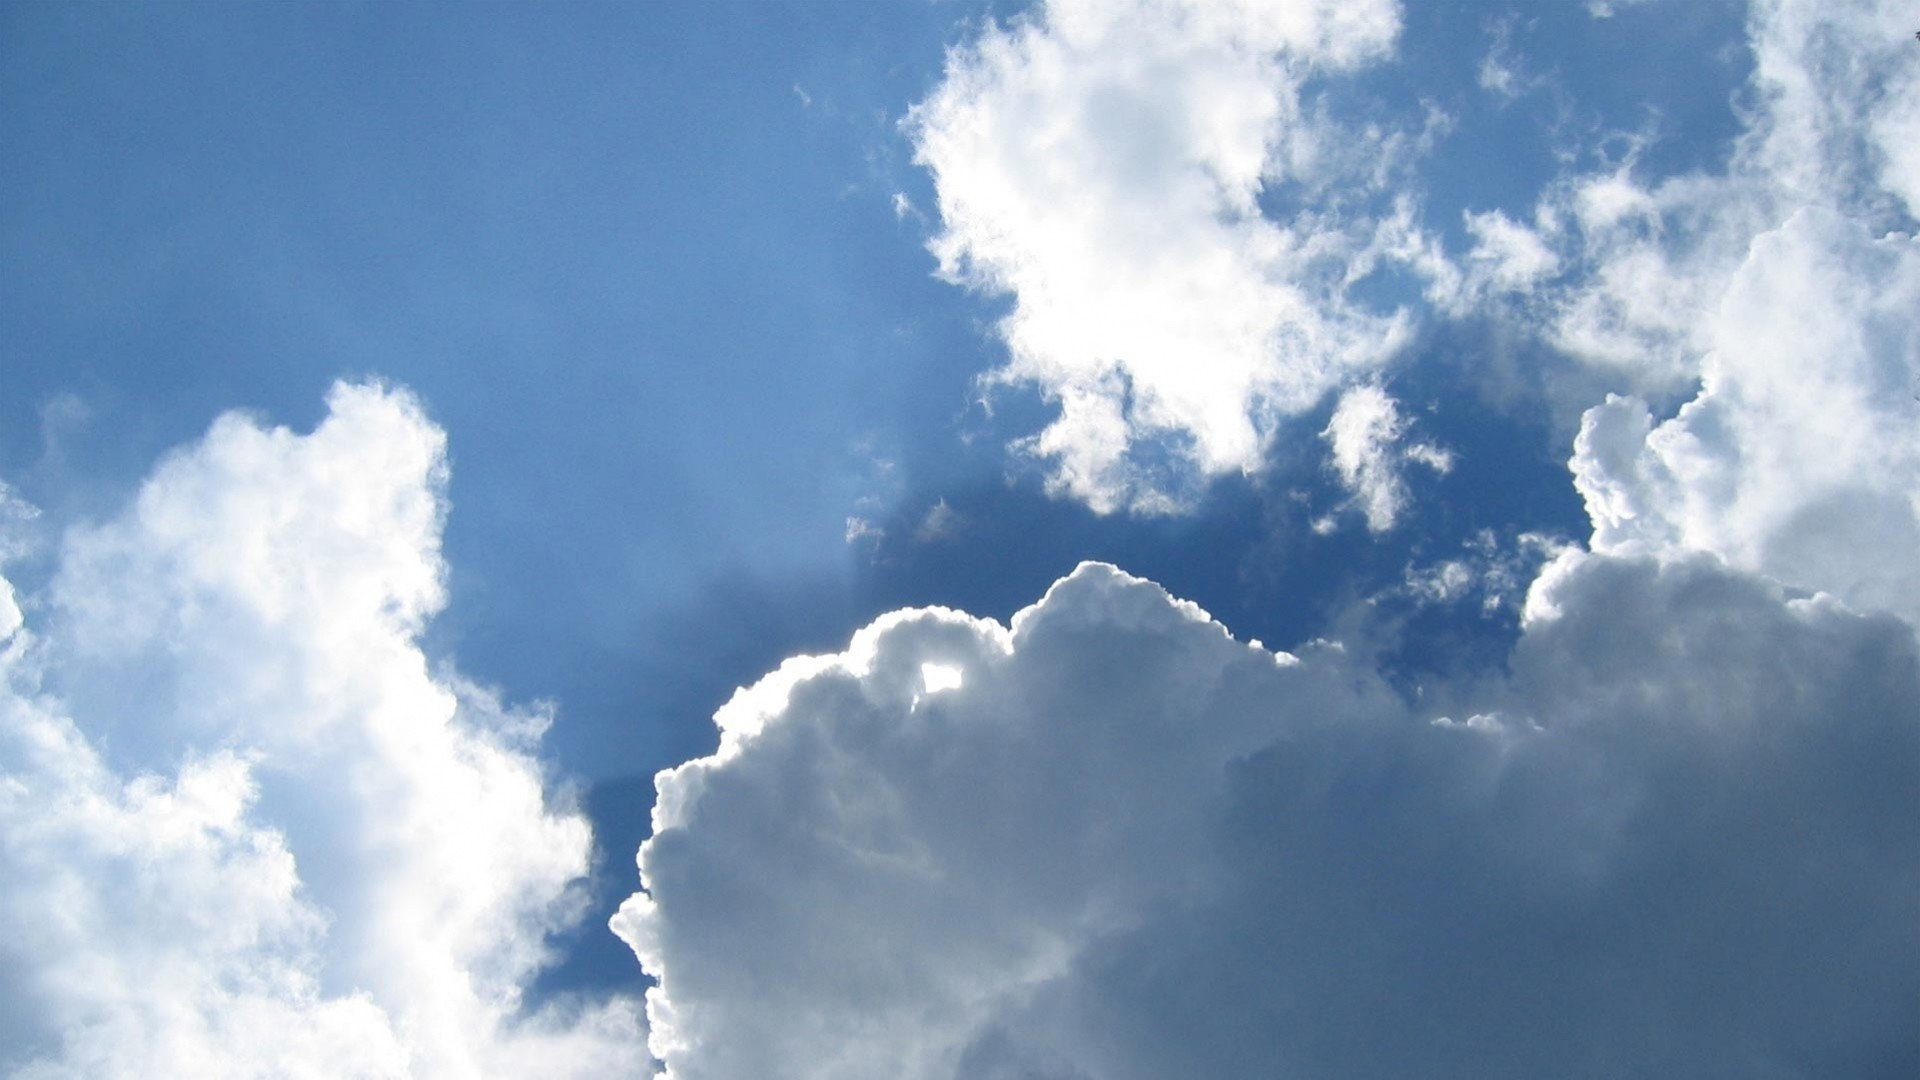 1920x1080  Wallpaper sky, clouds, blue, white, clear